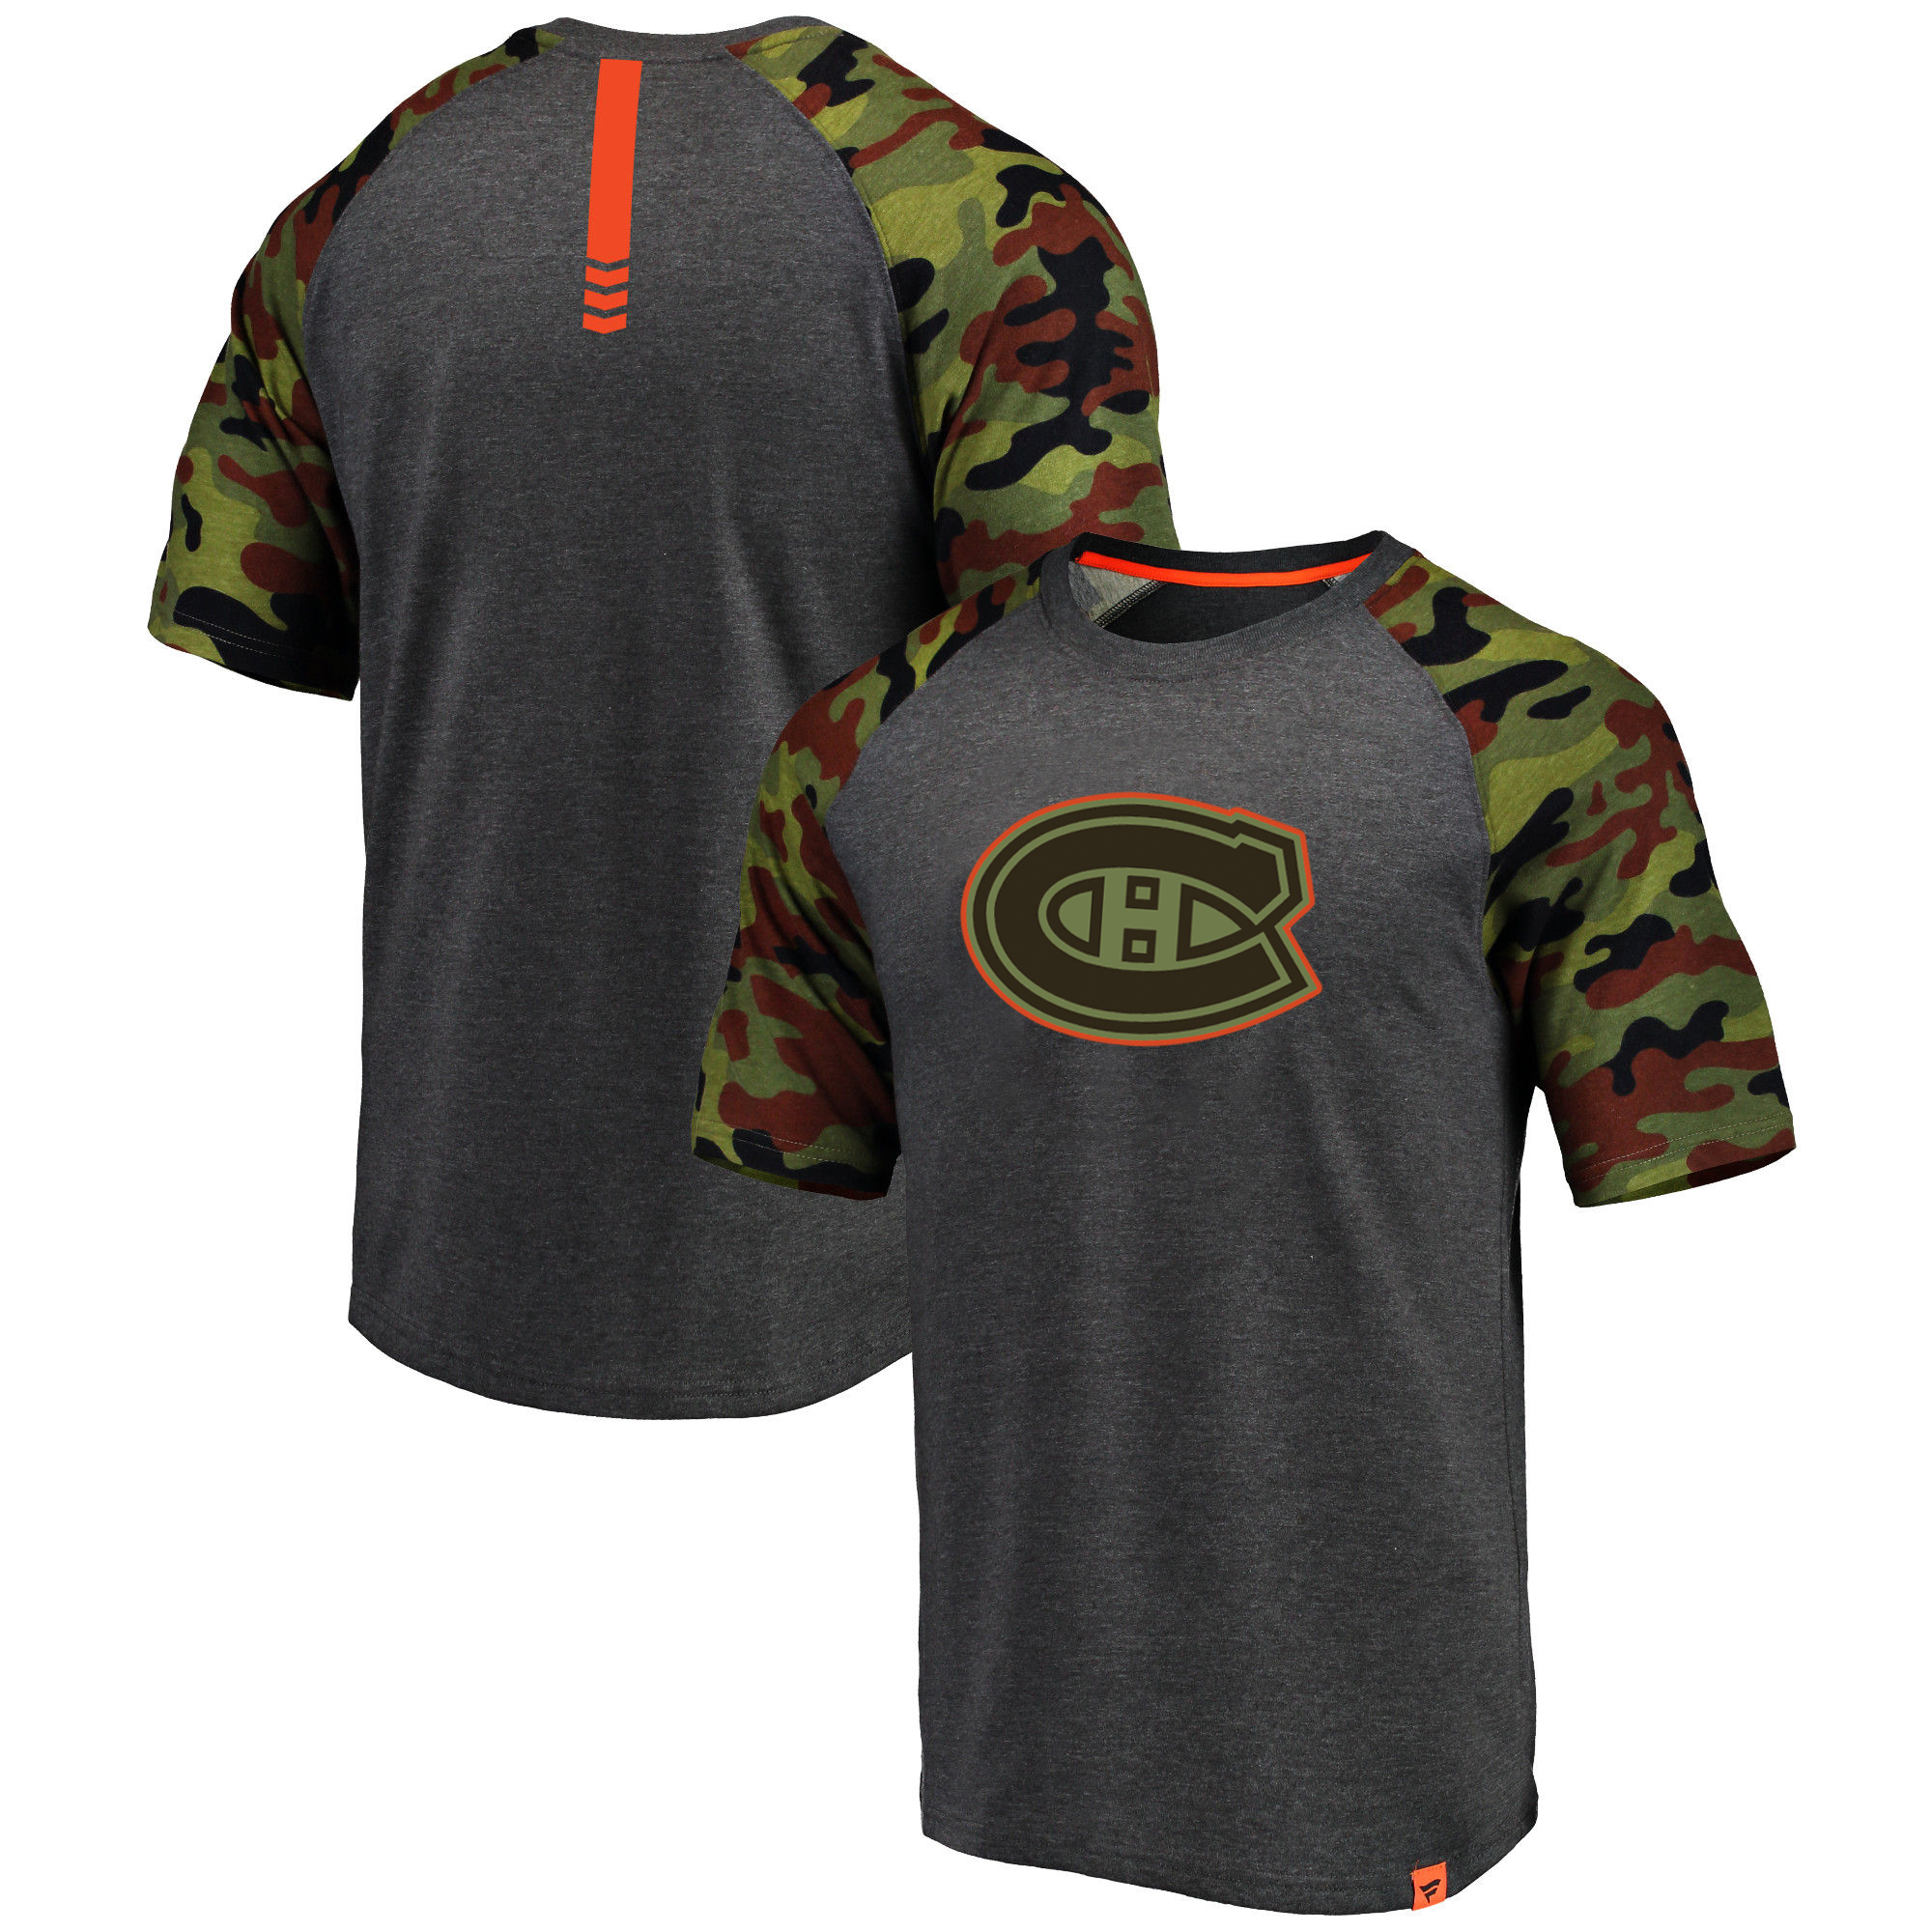 Montreal Canadiens Fanatics Branded Heathered Gray/Camo Recon Camo Raglan T-Shirt